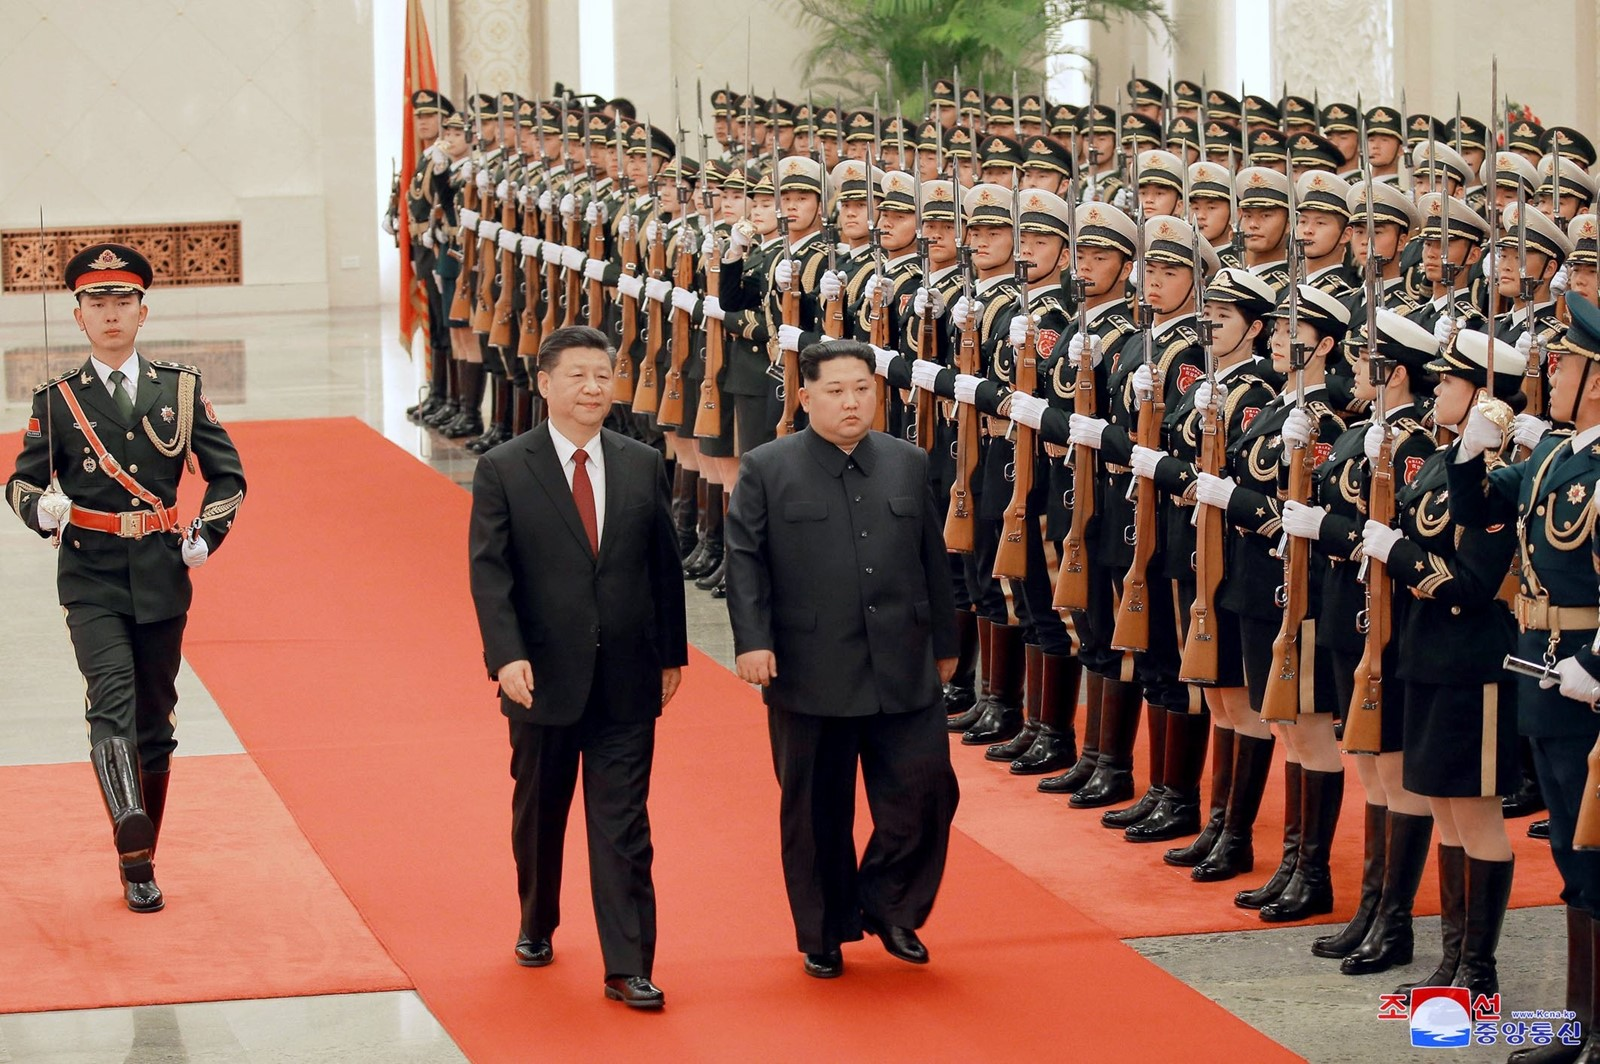 Chinese President Xi Jinping, left, and North Korean leader Kim Jong Un inspect an honor guard in Beijing on Monday. The leaders may have used their meeting to strategize about North Korea's upcoming talks. — Photograph: Korean Central News Agency.